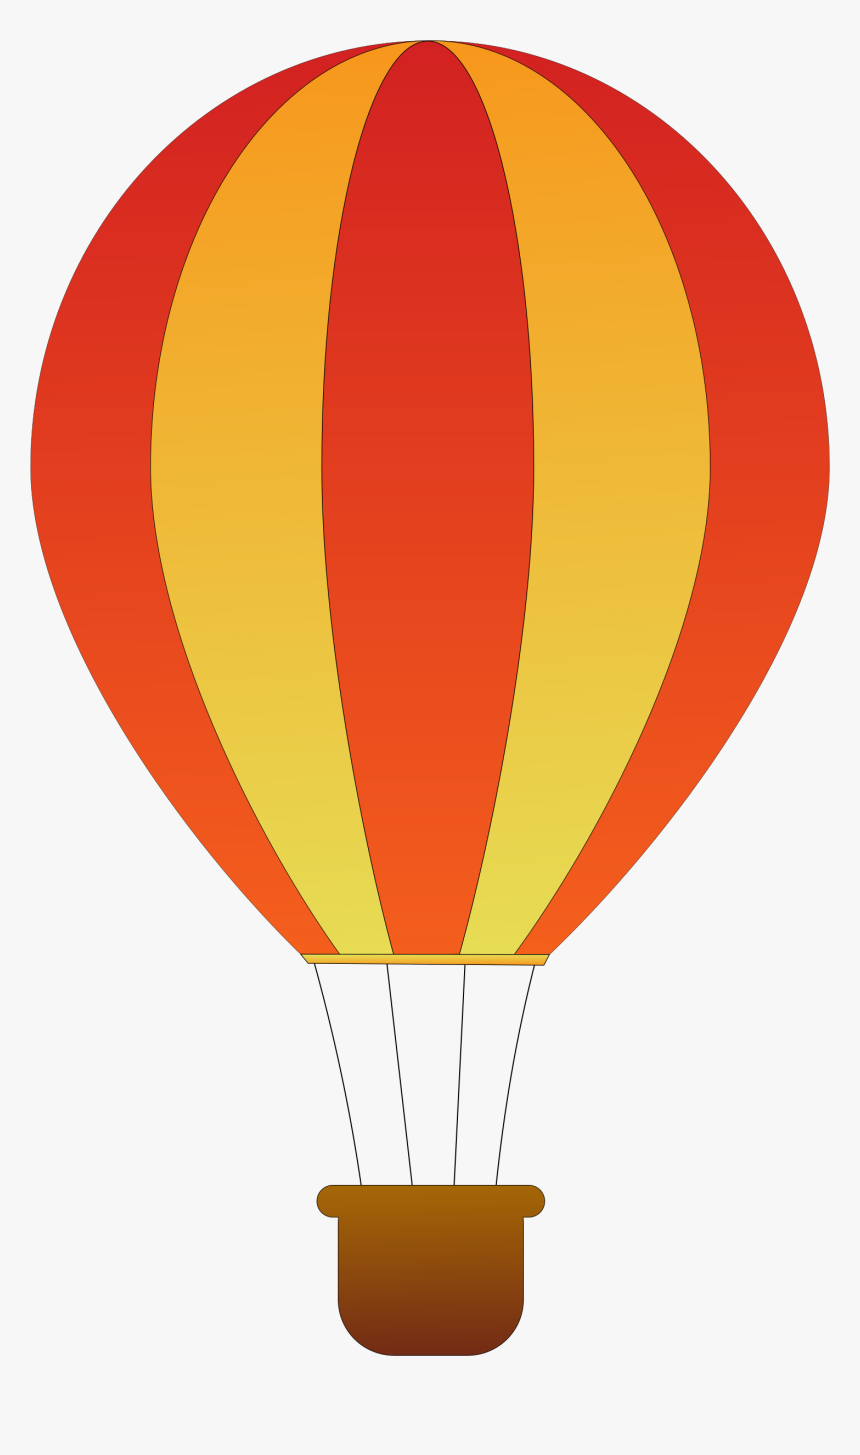 Vertical Striped Balloons Big - Hot Air Balloon Clipart, HD Png Download, Free Download